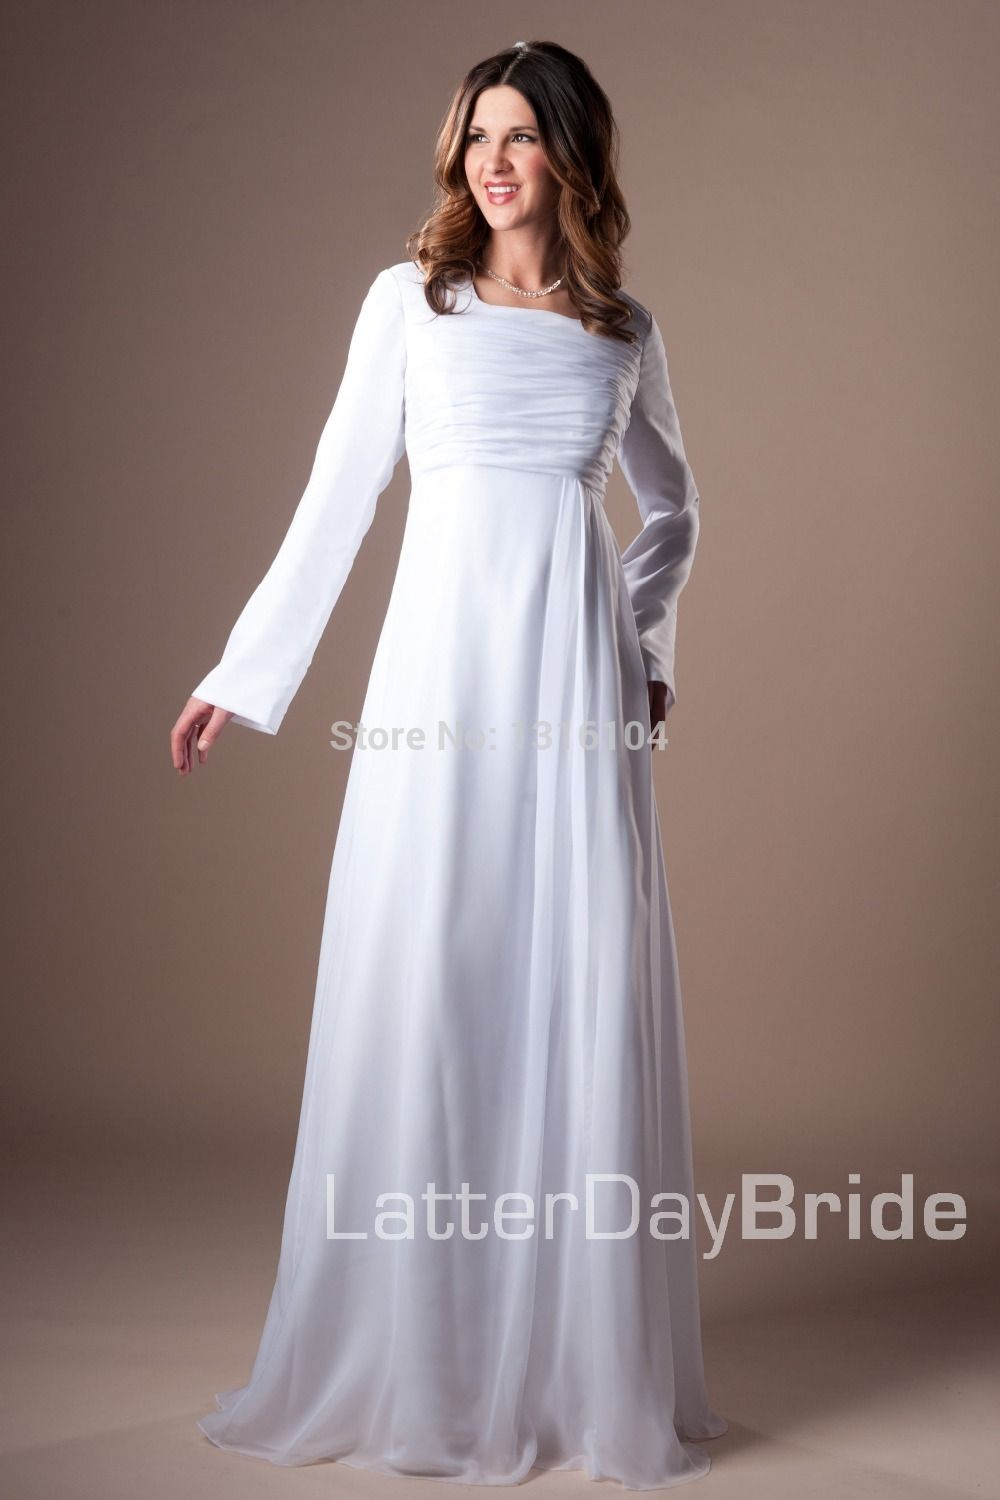 Real 2015 Simple White  A-line Floor Length Modest Full Long Sleeves Chiffon Temple Wedding Dress With Sleeves Actual image